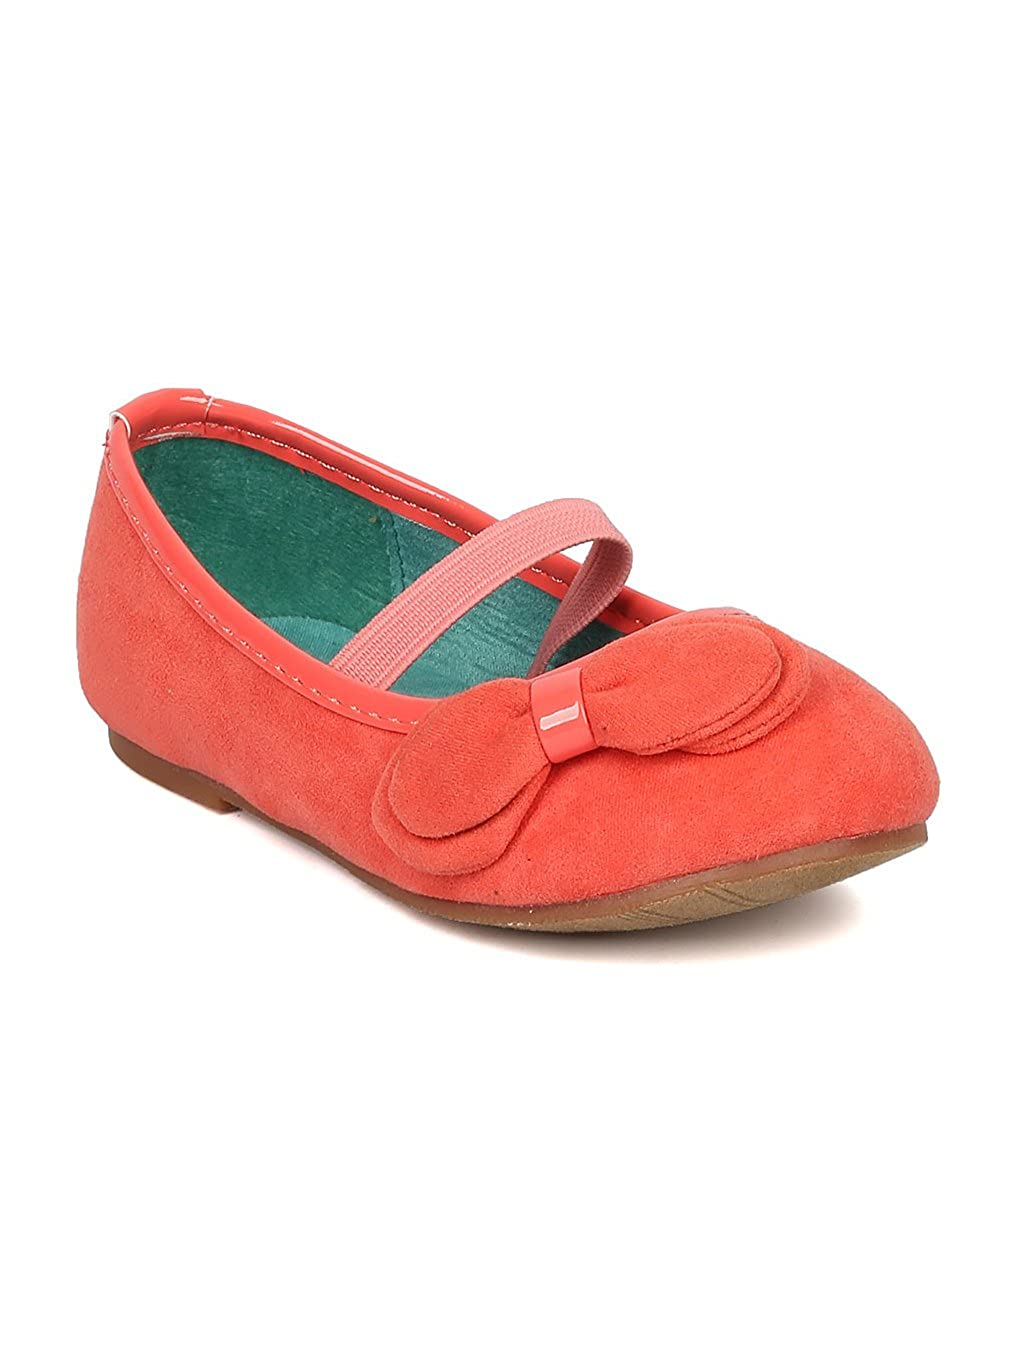 Toddler JELLY BEANS Paroya Suede Bow Embellishment Mary Jane Ballerina Flat Coral Faux Suede AE01